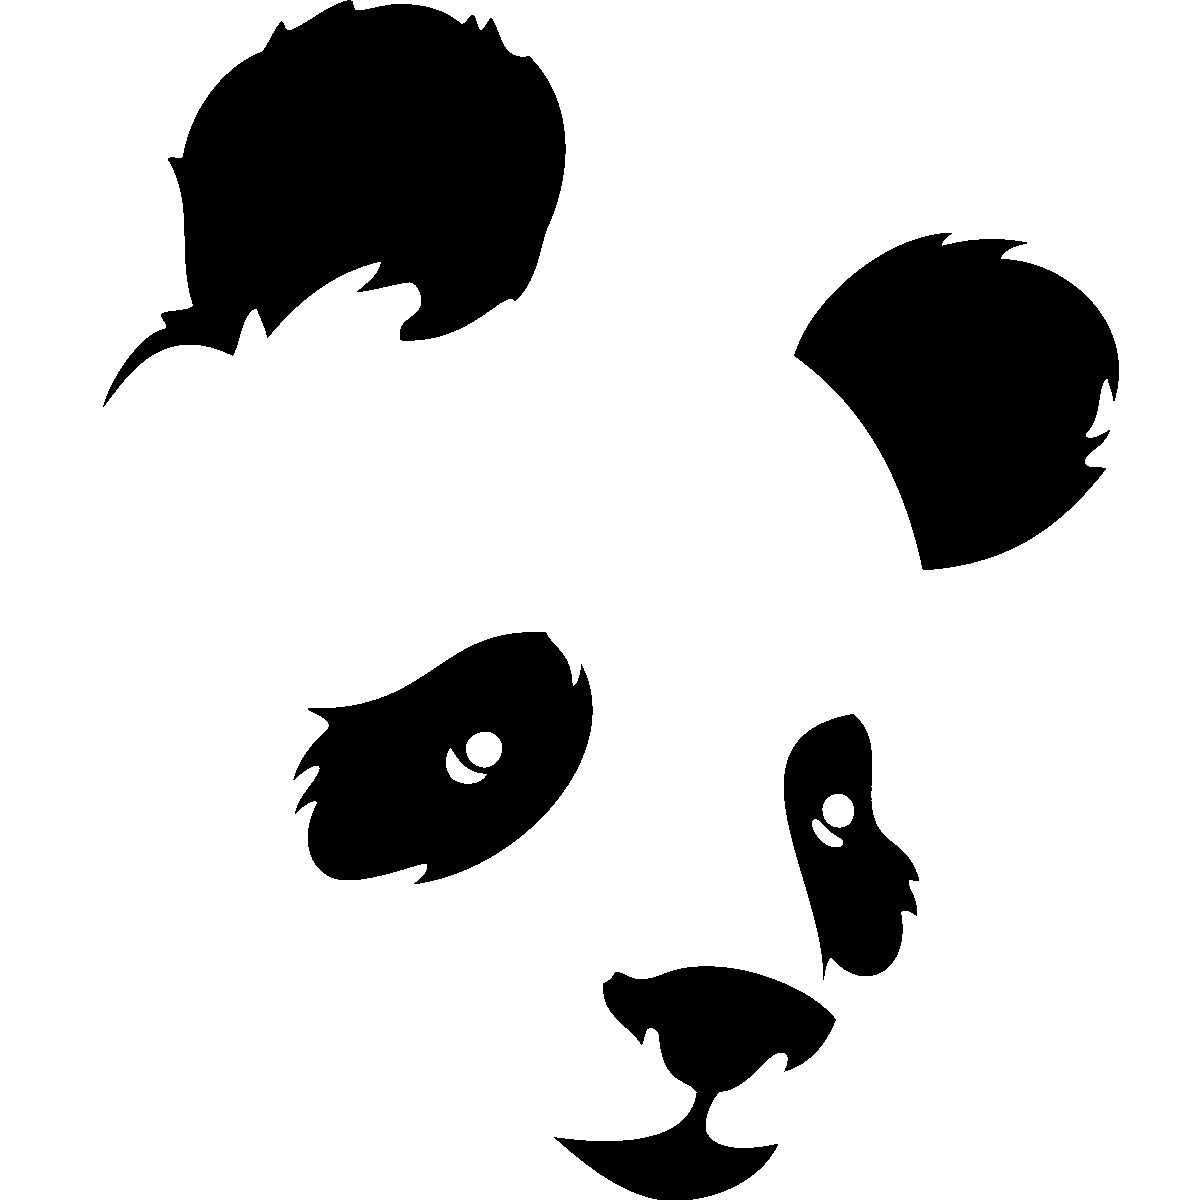 Chambre En Anglais : Panda Wall Decal